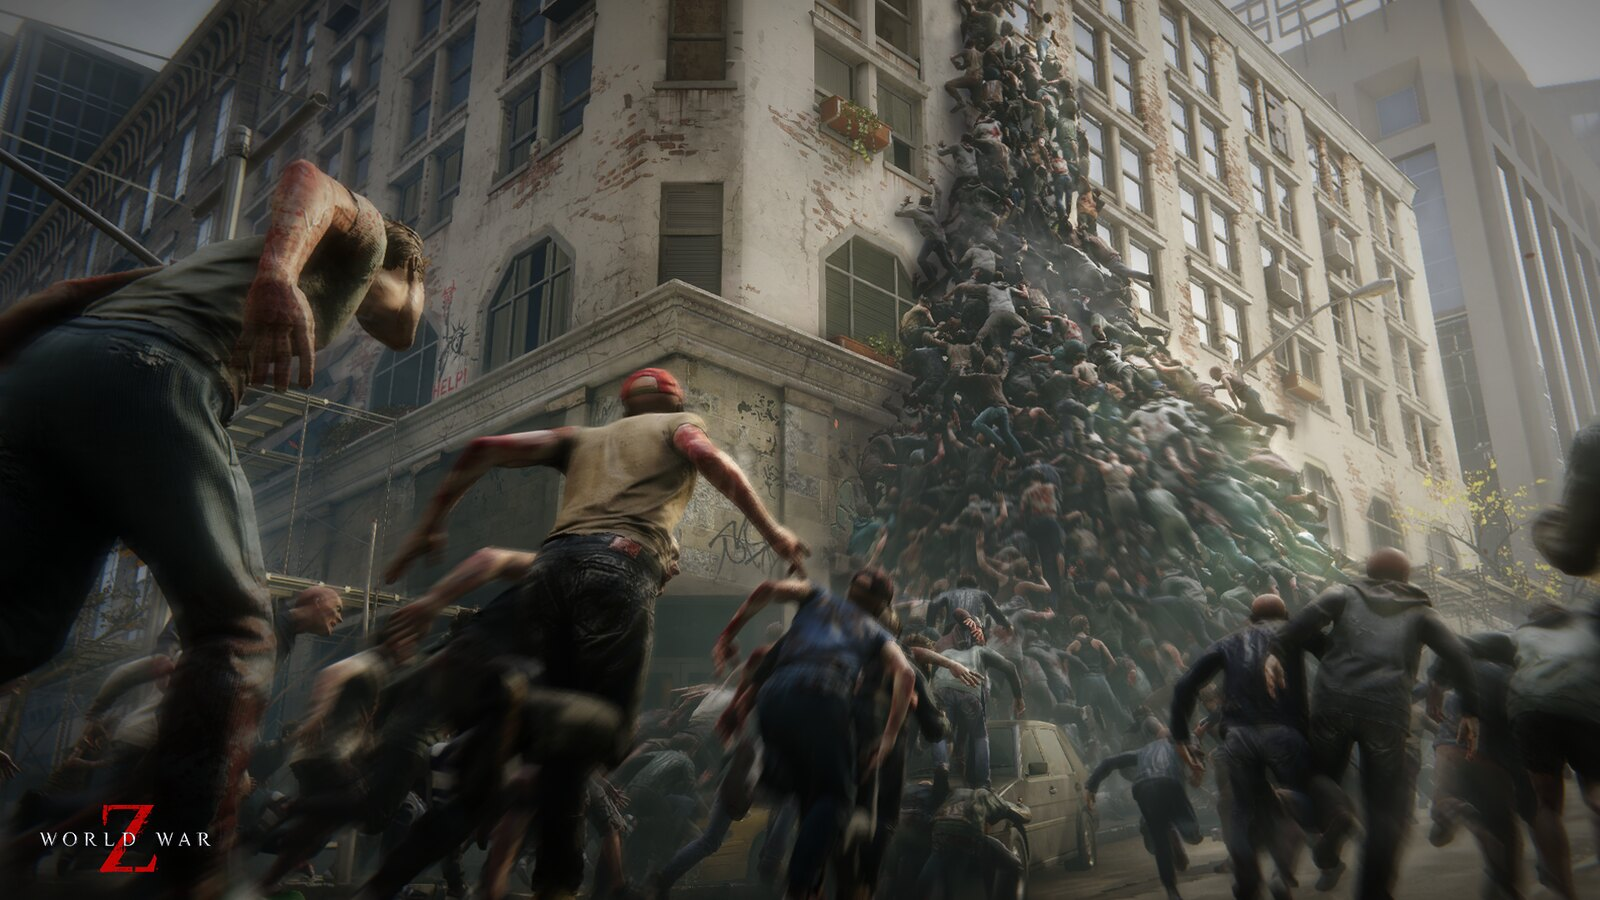 World War Z - Horde Mode Z